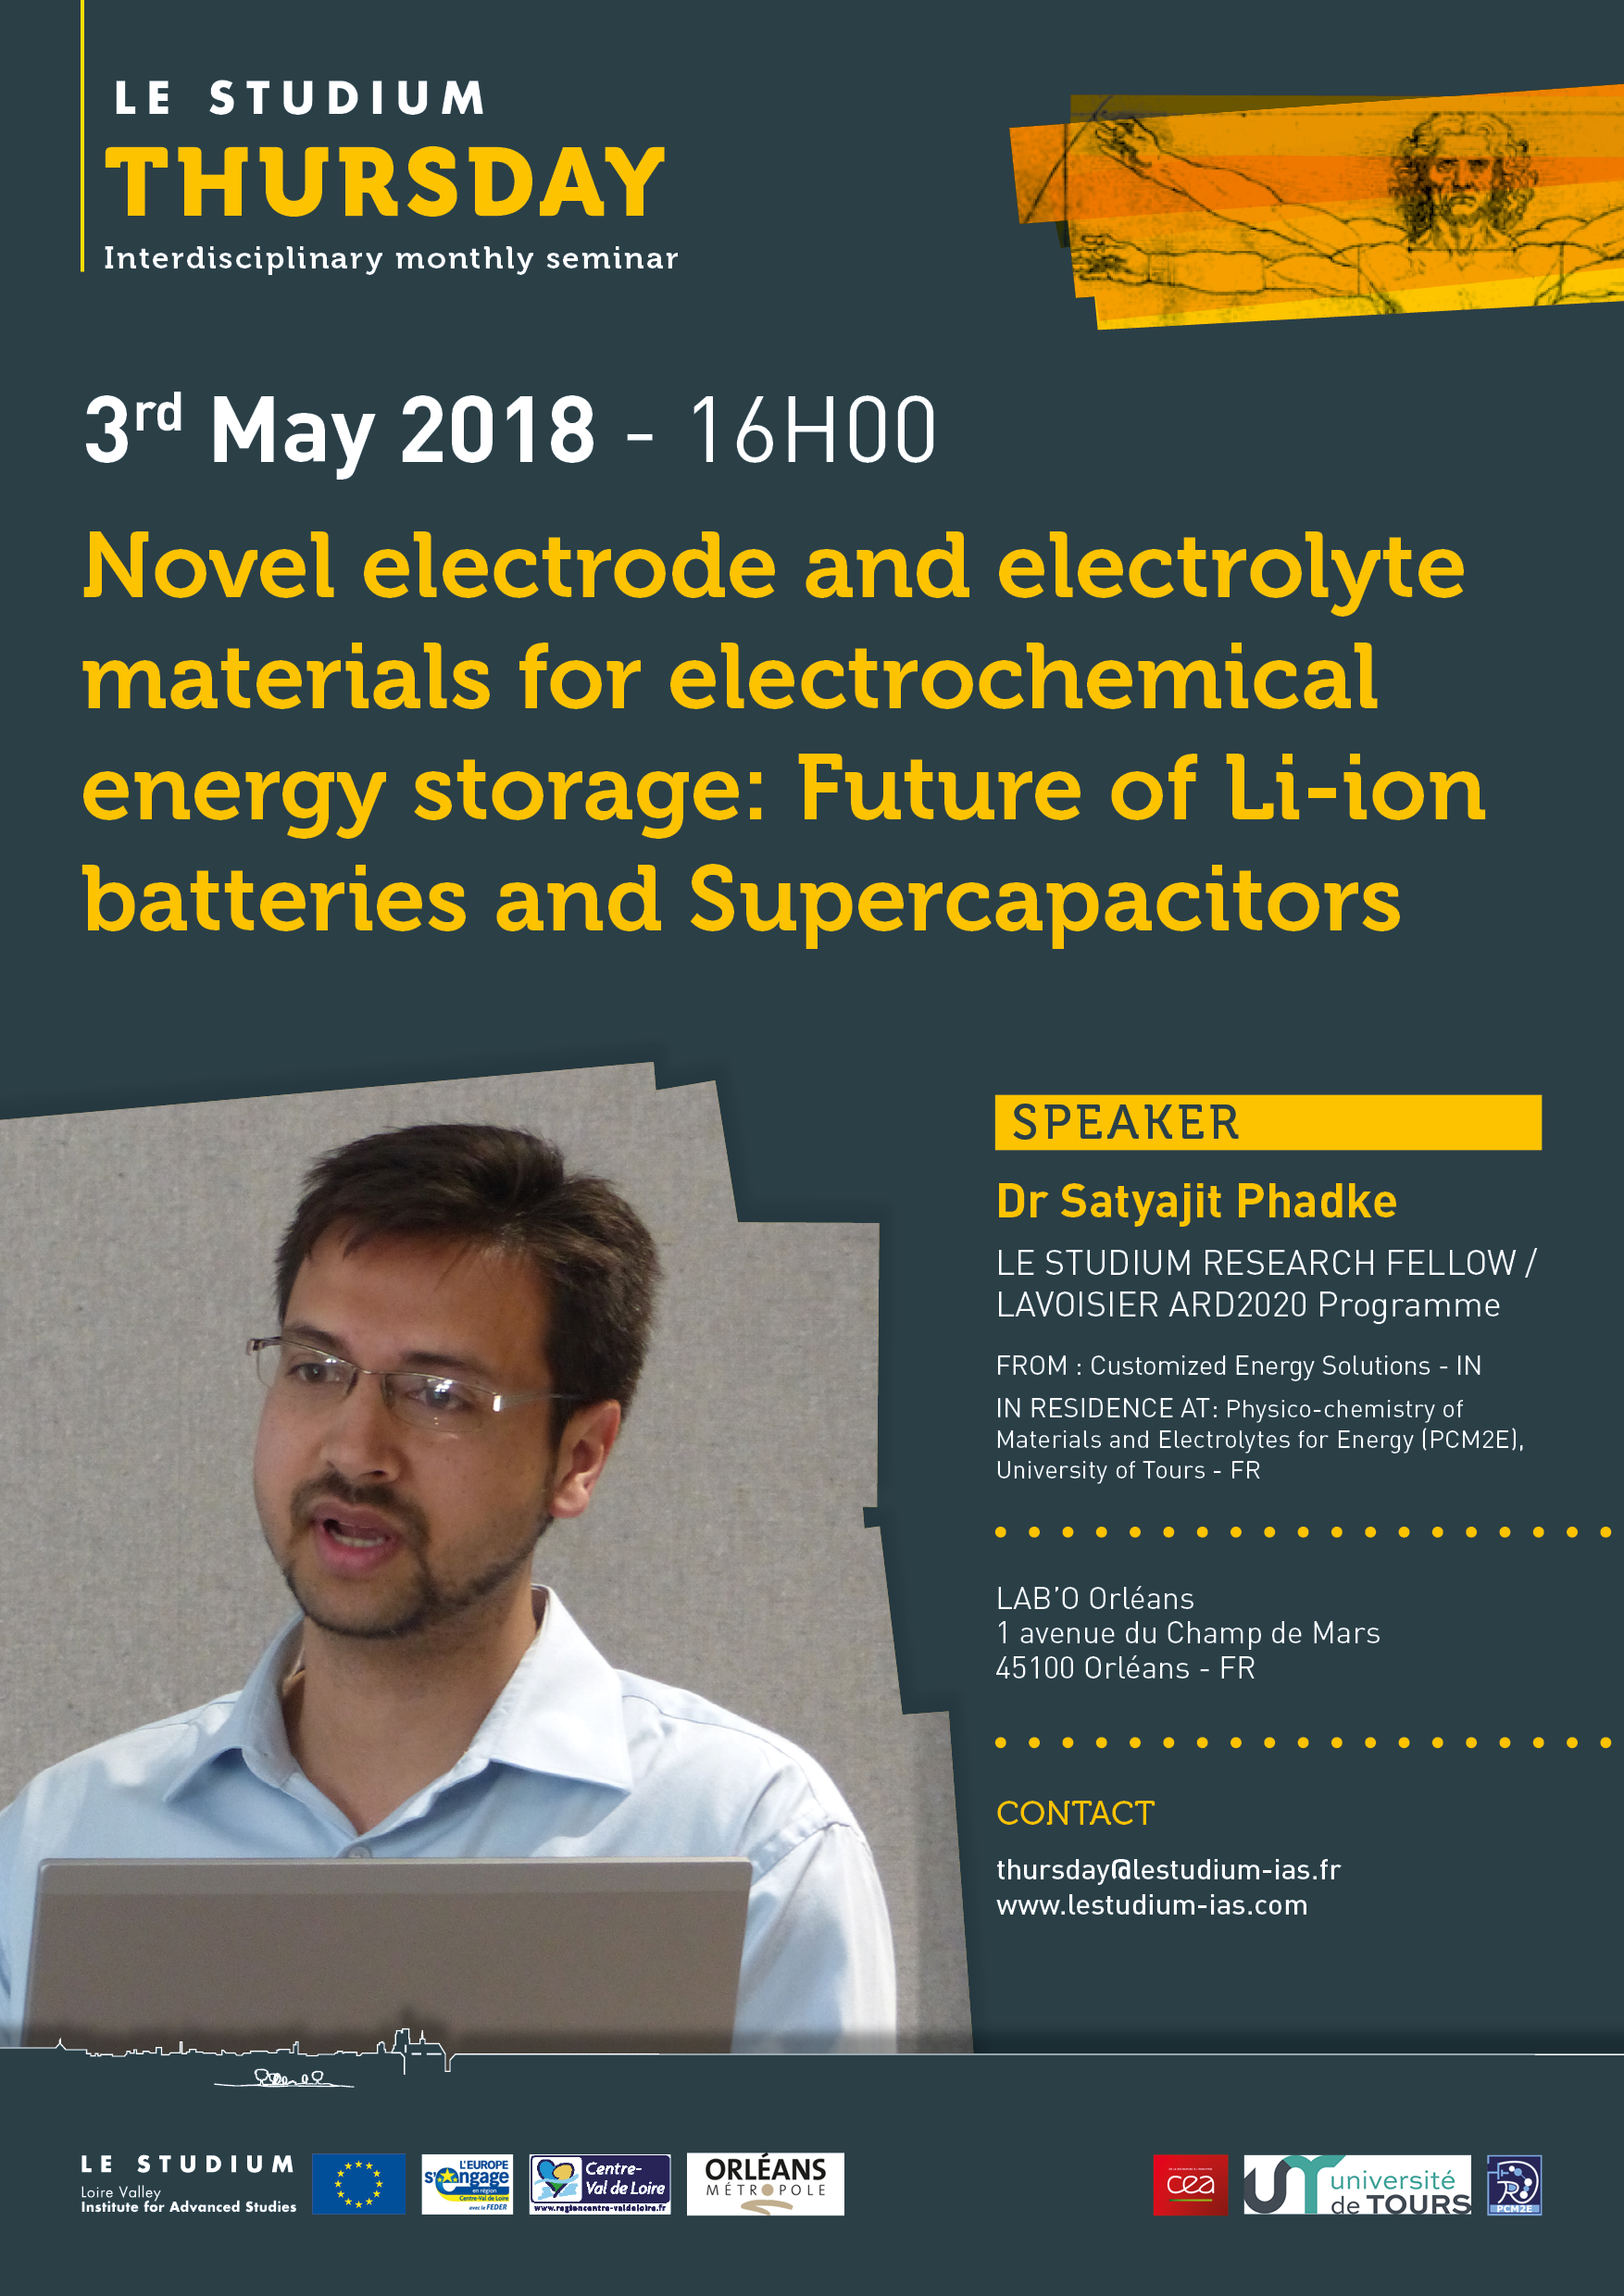 Novel electrode and electrolyte materials for